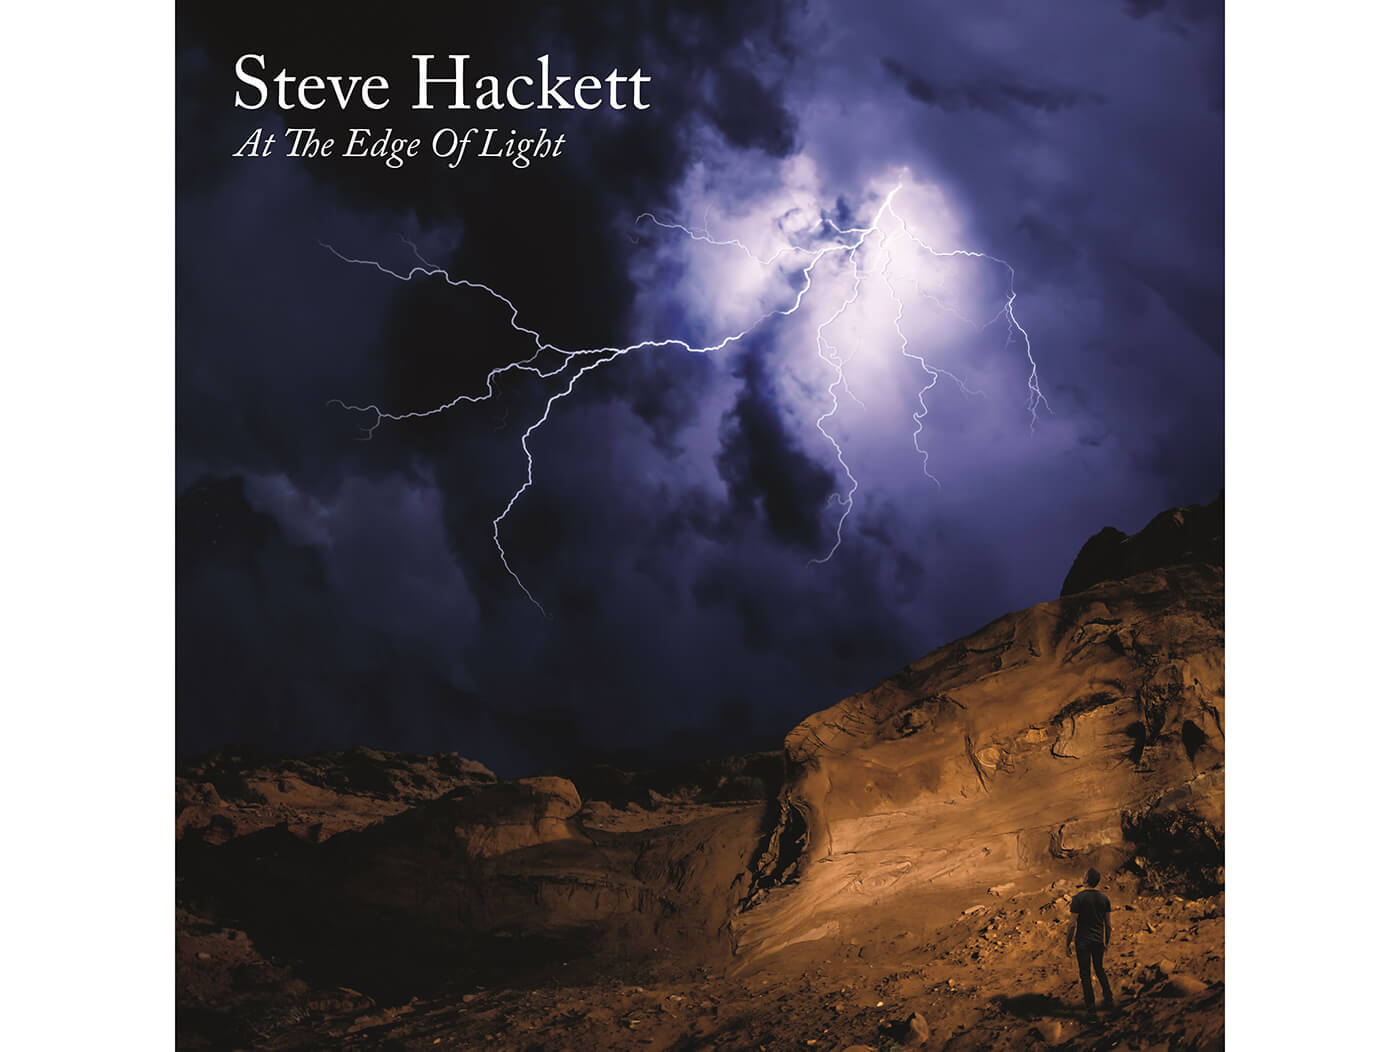 Steve Hackett At the edge of the light album cover